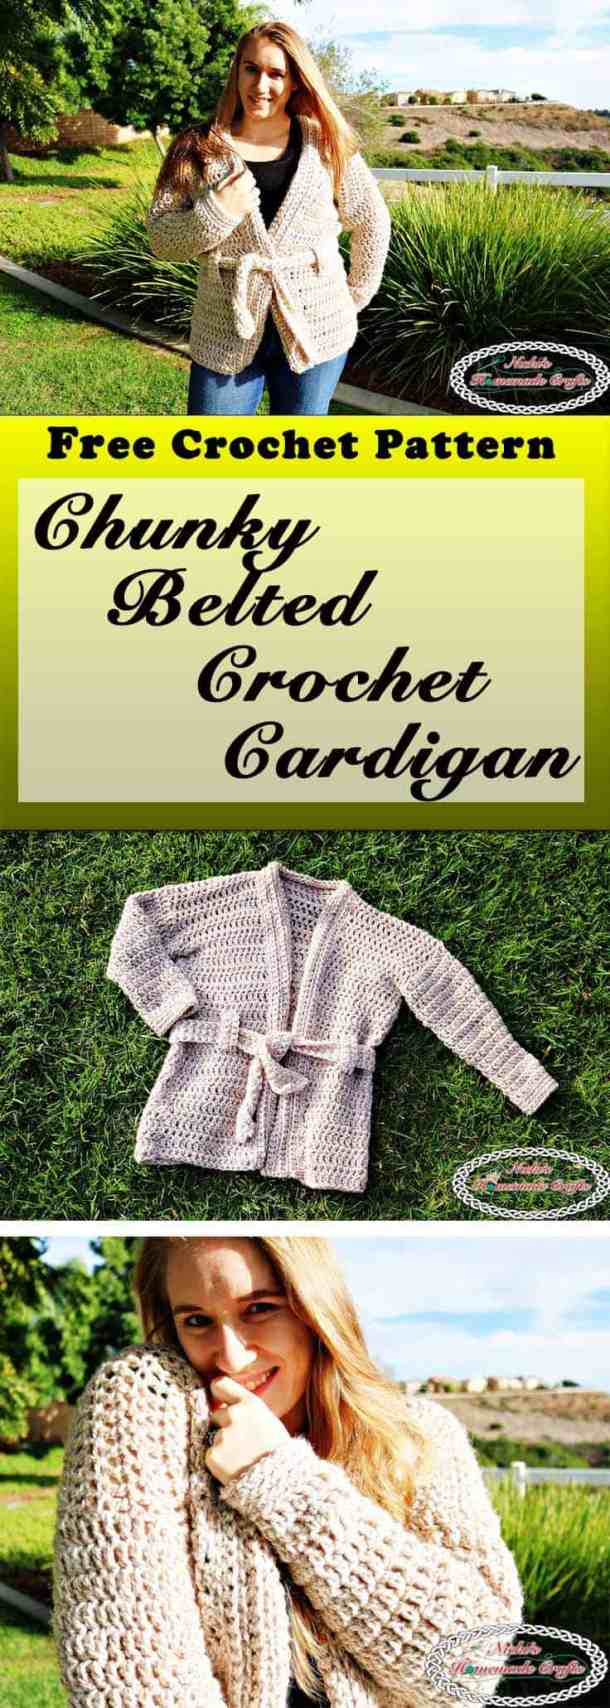 Chunky Belted Crochet Cardigan - Free Pattern - Nicki\'s Homemade Crafts